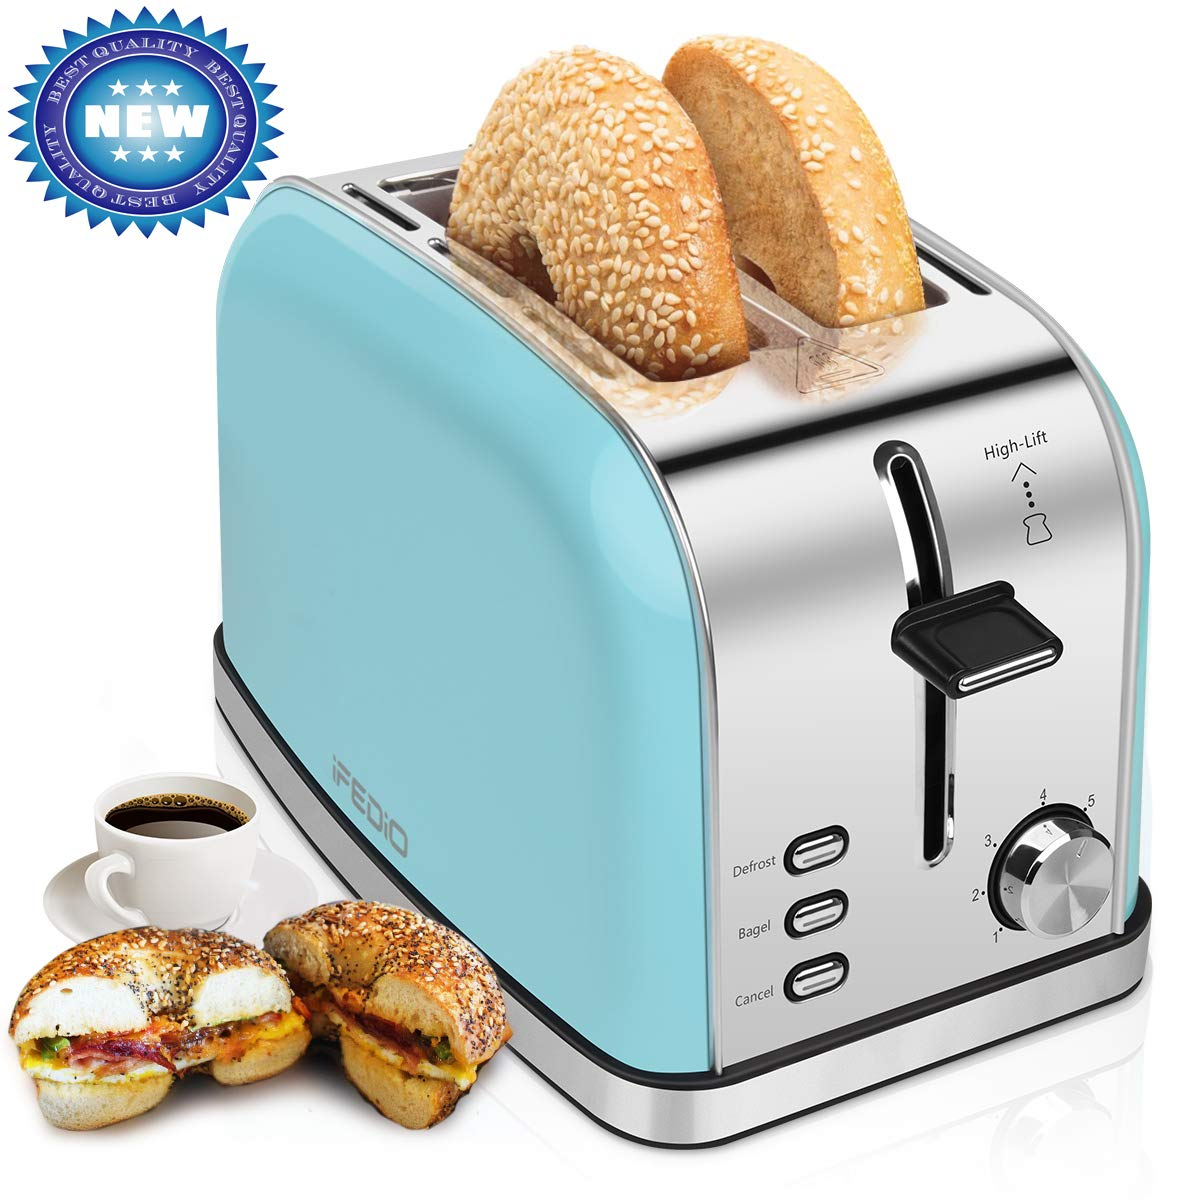 2-Slice-Toasters Bread Stainless Steel Compact Toaster Extra-Wide-slots for Household Kitchen Breakfast Bagle Defrost Cancel Function Upgrade Toaster Muffins, Waffles and Bread(Blue) by iFedio